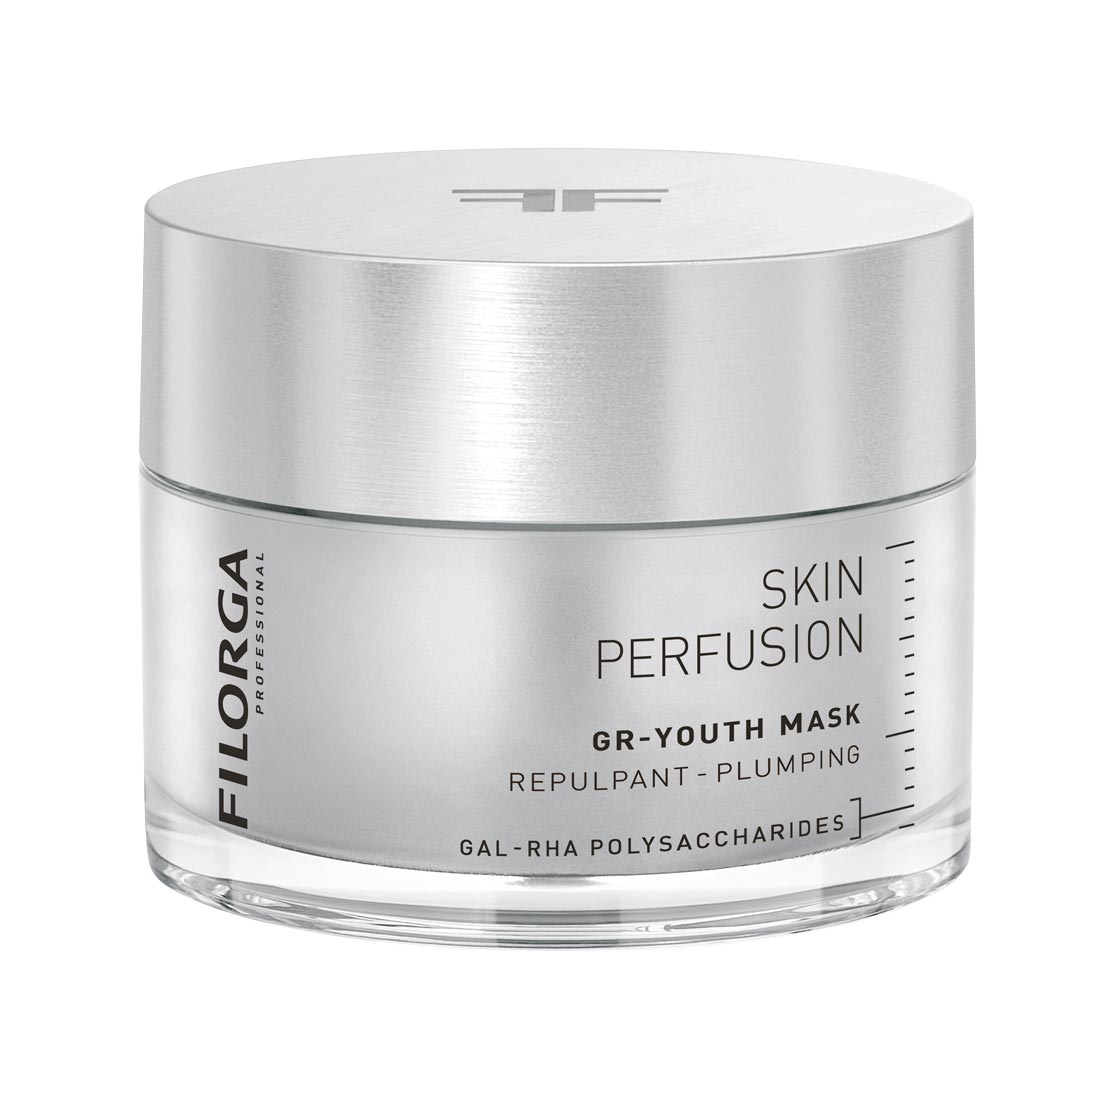 SKIN PERFUSION GR-YOUTH MASK 1